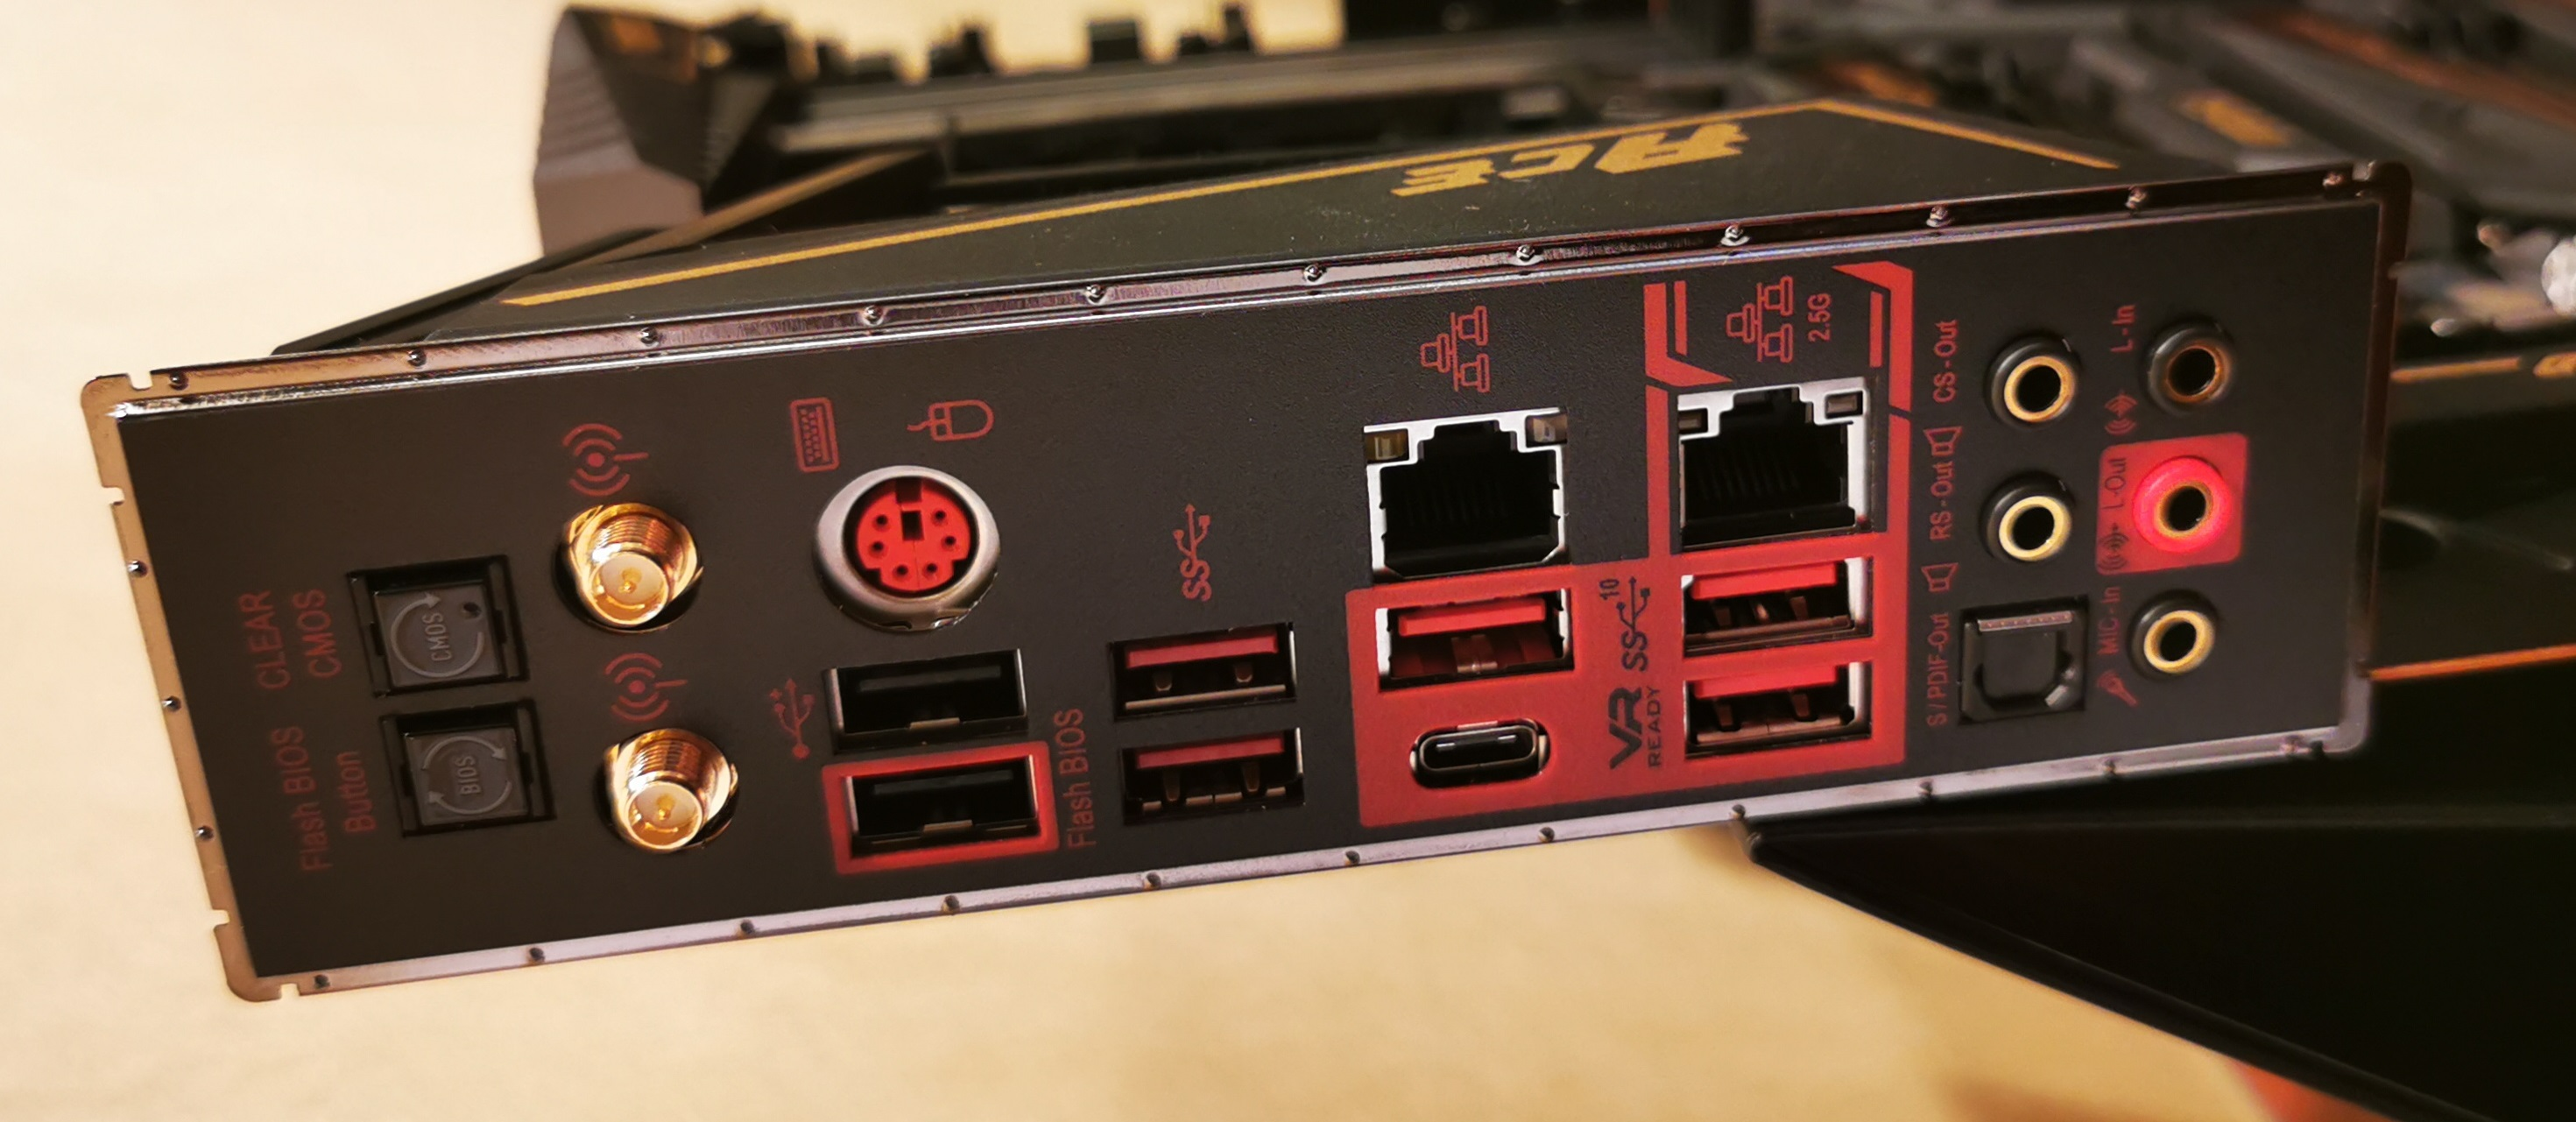 MSI MEG X570 Ace - The AMD X570 Motherboard Overview: Over 35+